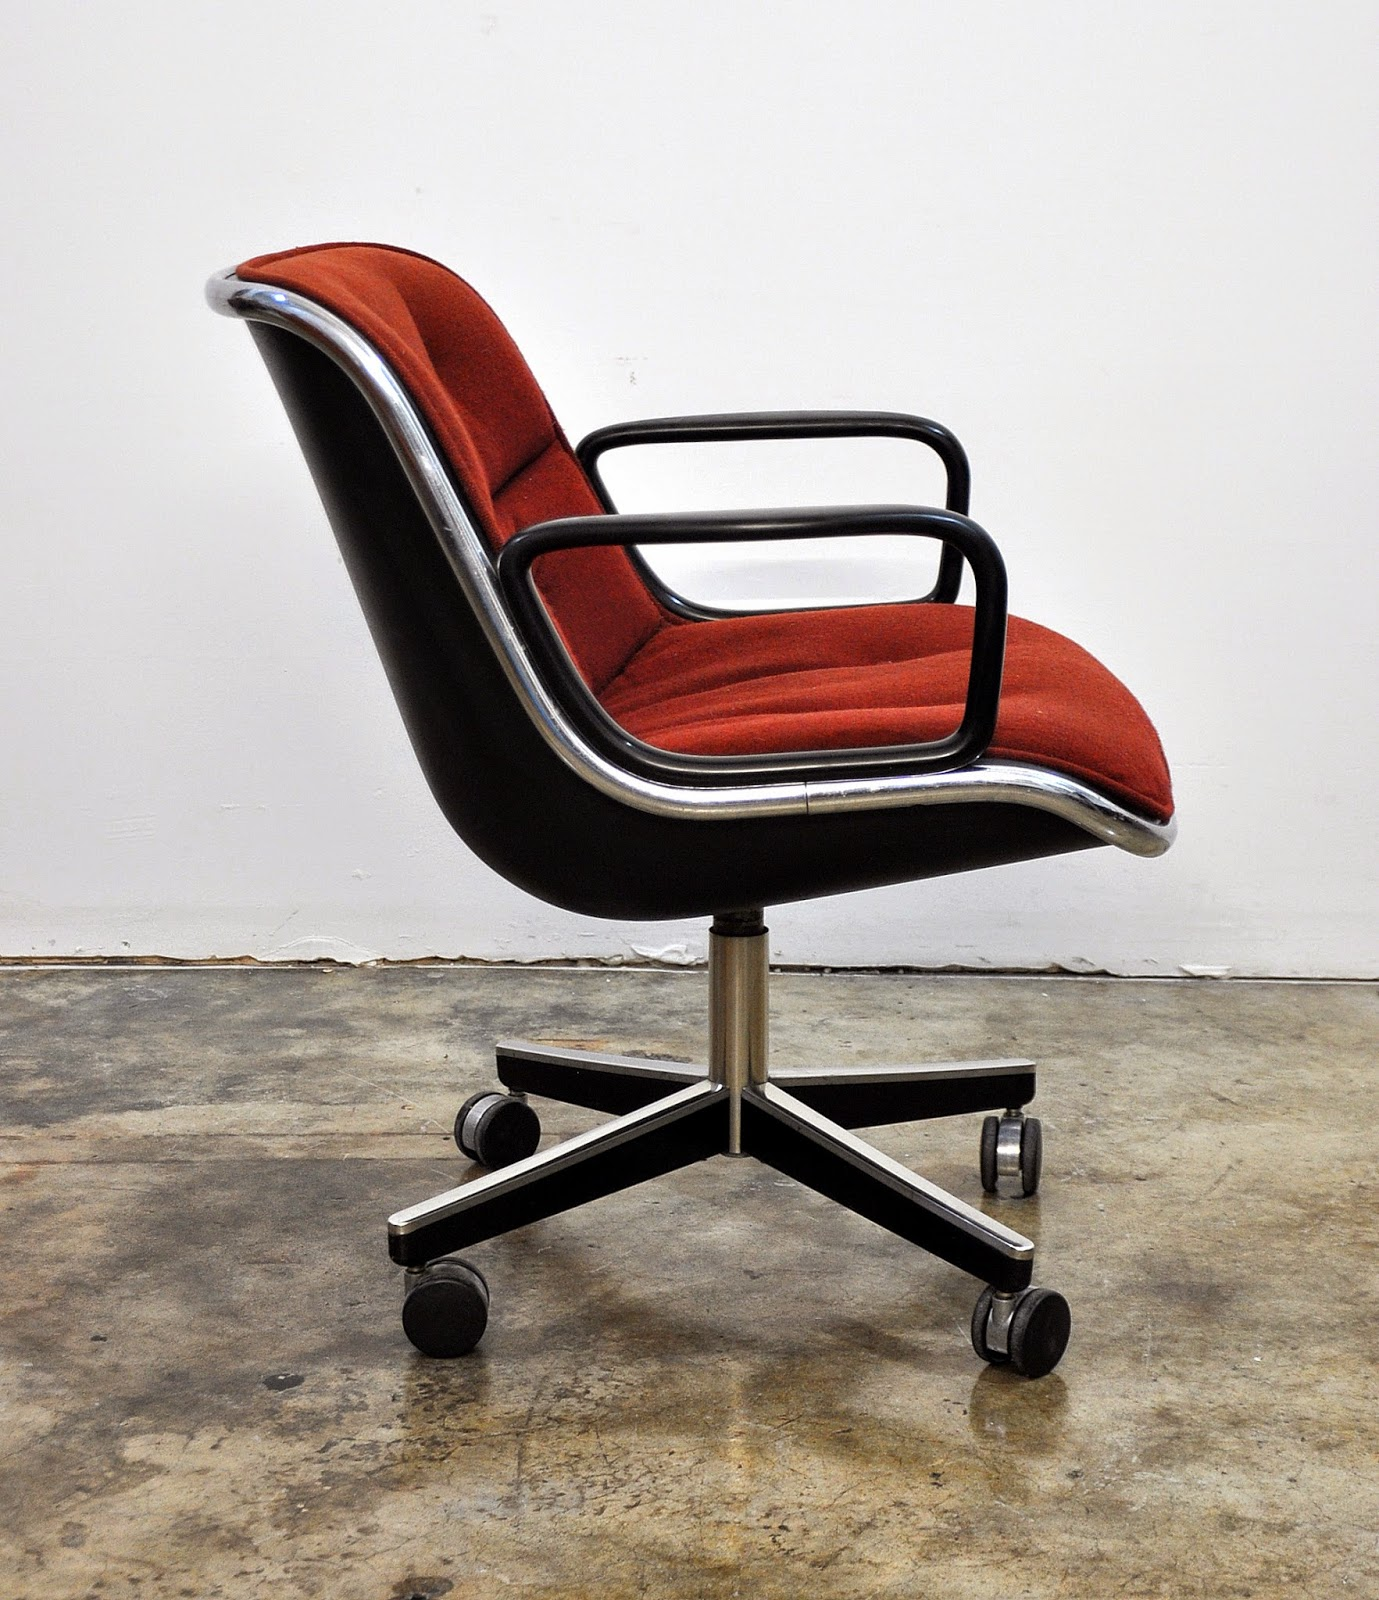 Knoll Pollock Chair Chicco High Parts Replacement Select Modern Charles For Executive